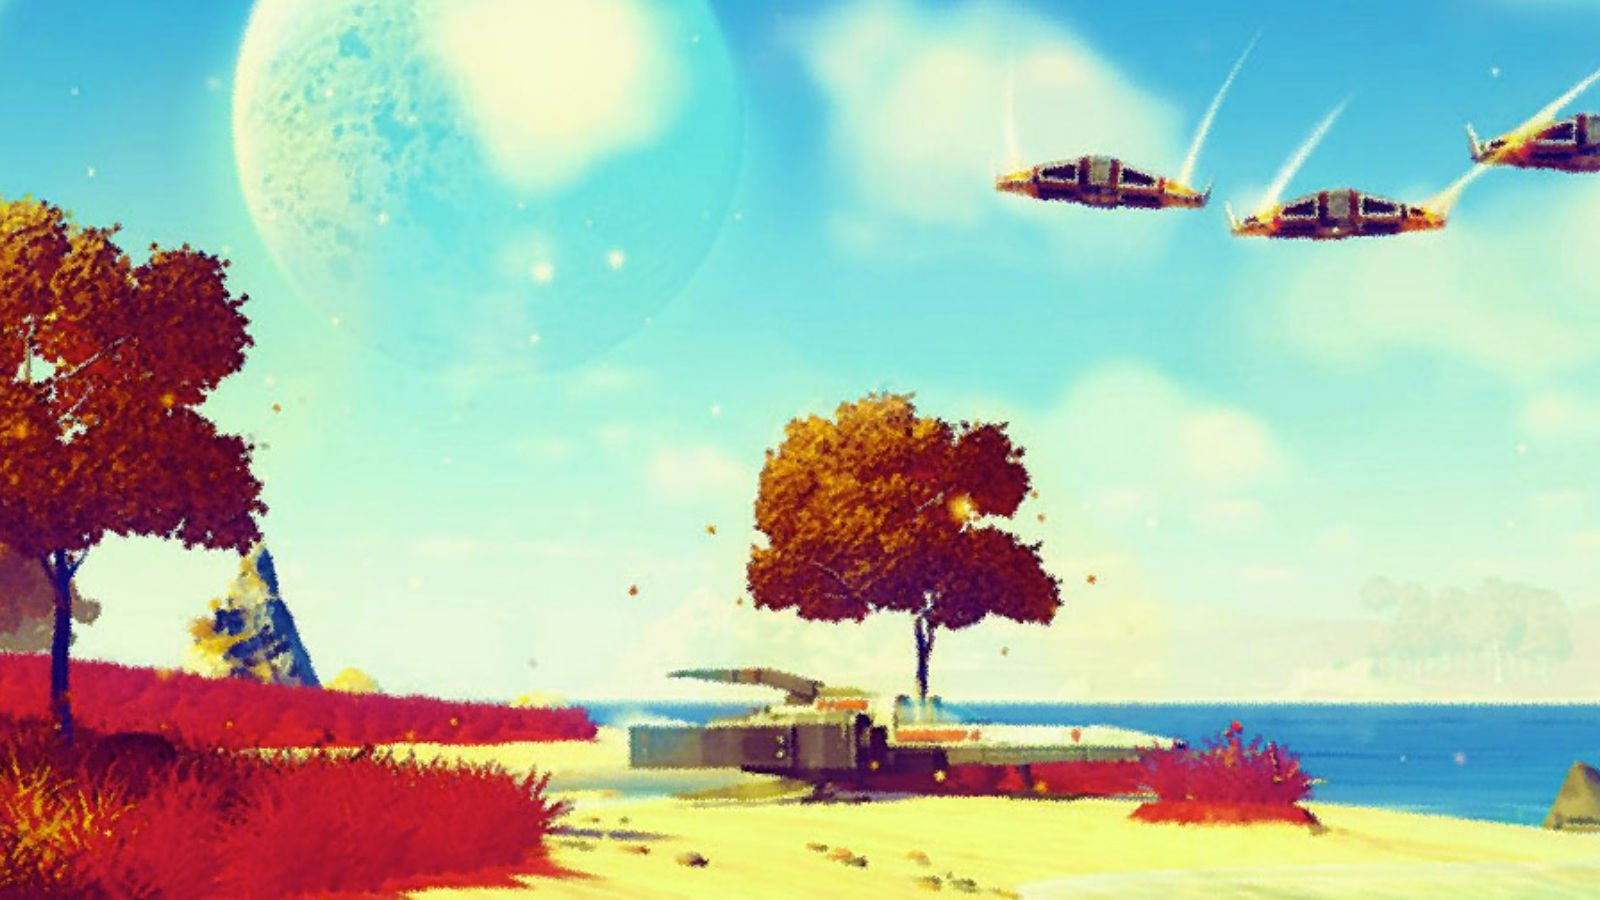 No Man's Sky Review 1.0